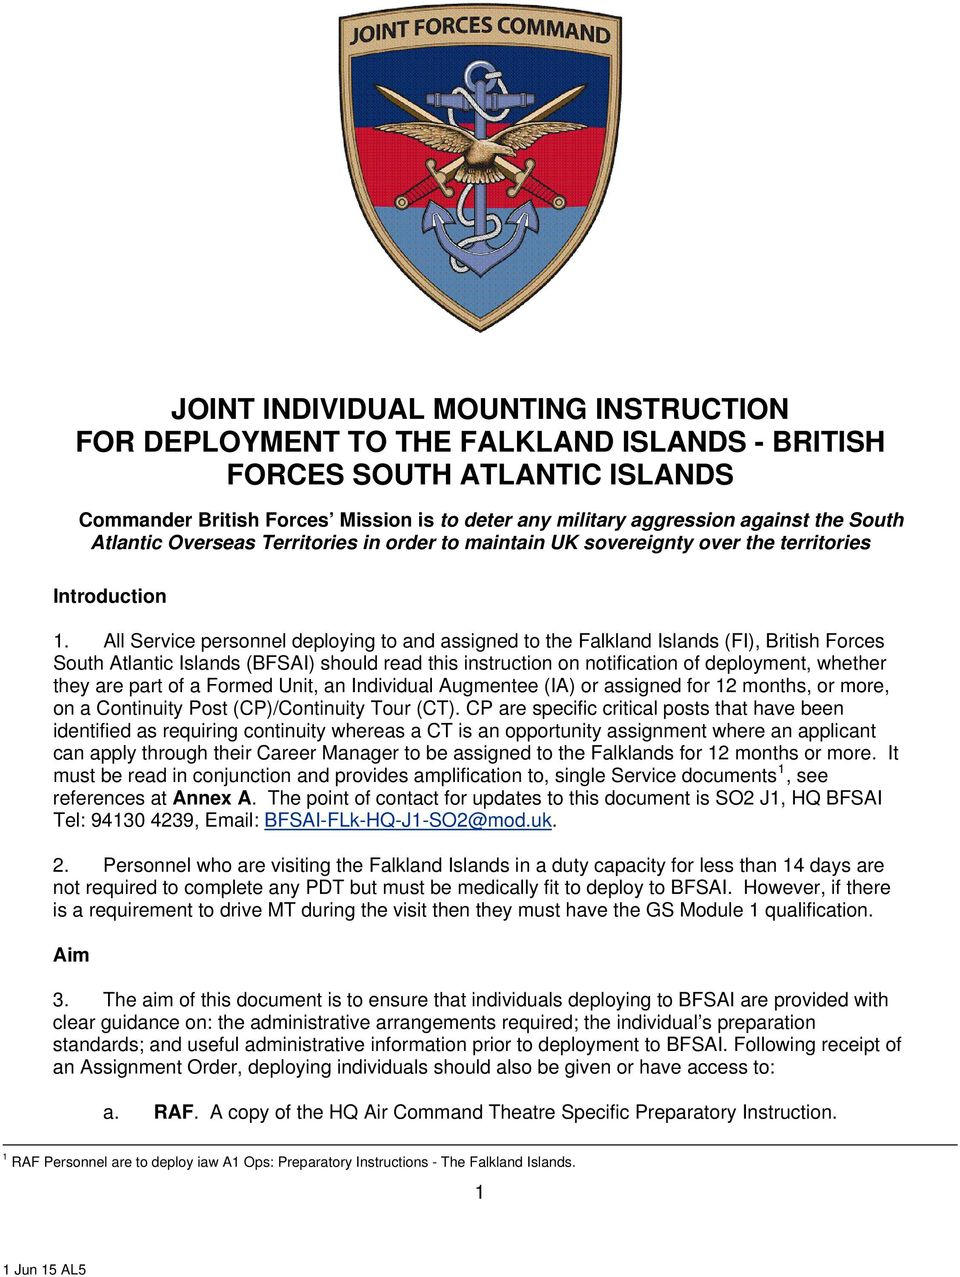 All Service personnel deploying to and assigned to the Falkland Islands (FI), British Forces South Atlantic Islands (BFSAI) should read this instruction on notification of deployment, whether they